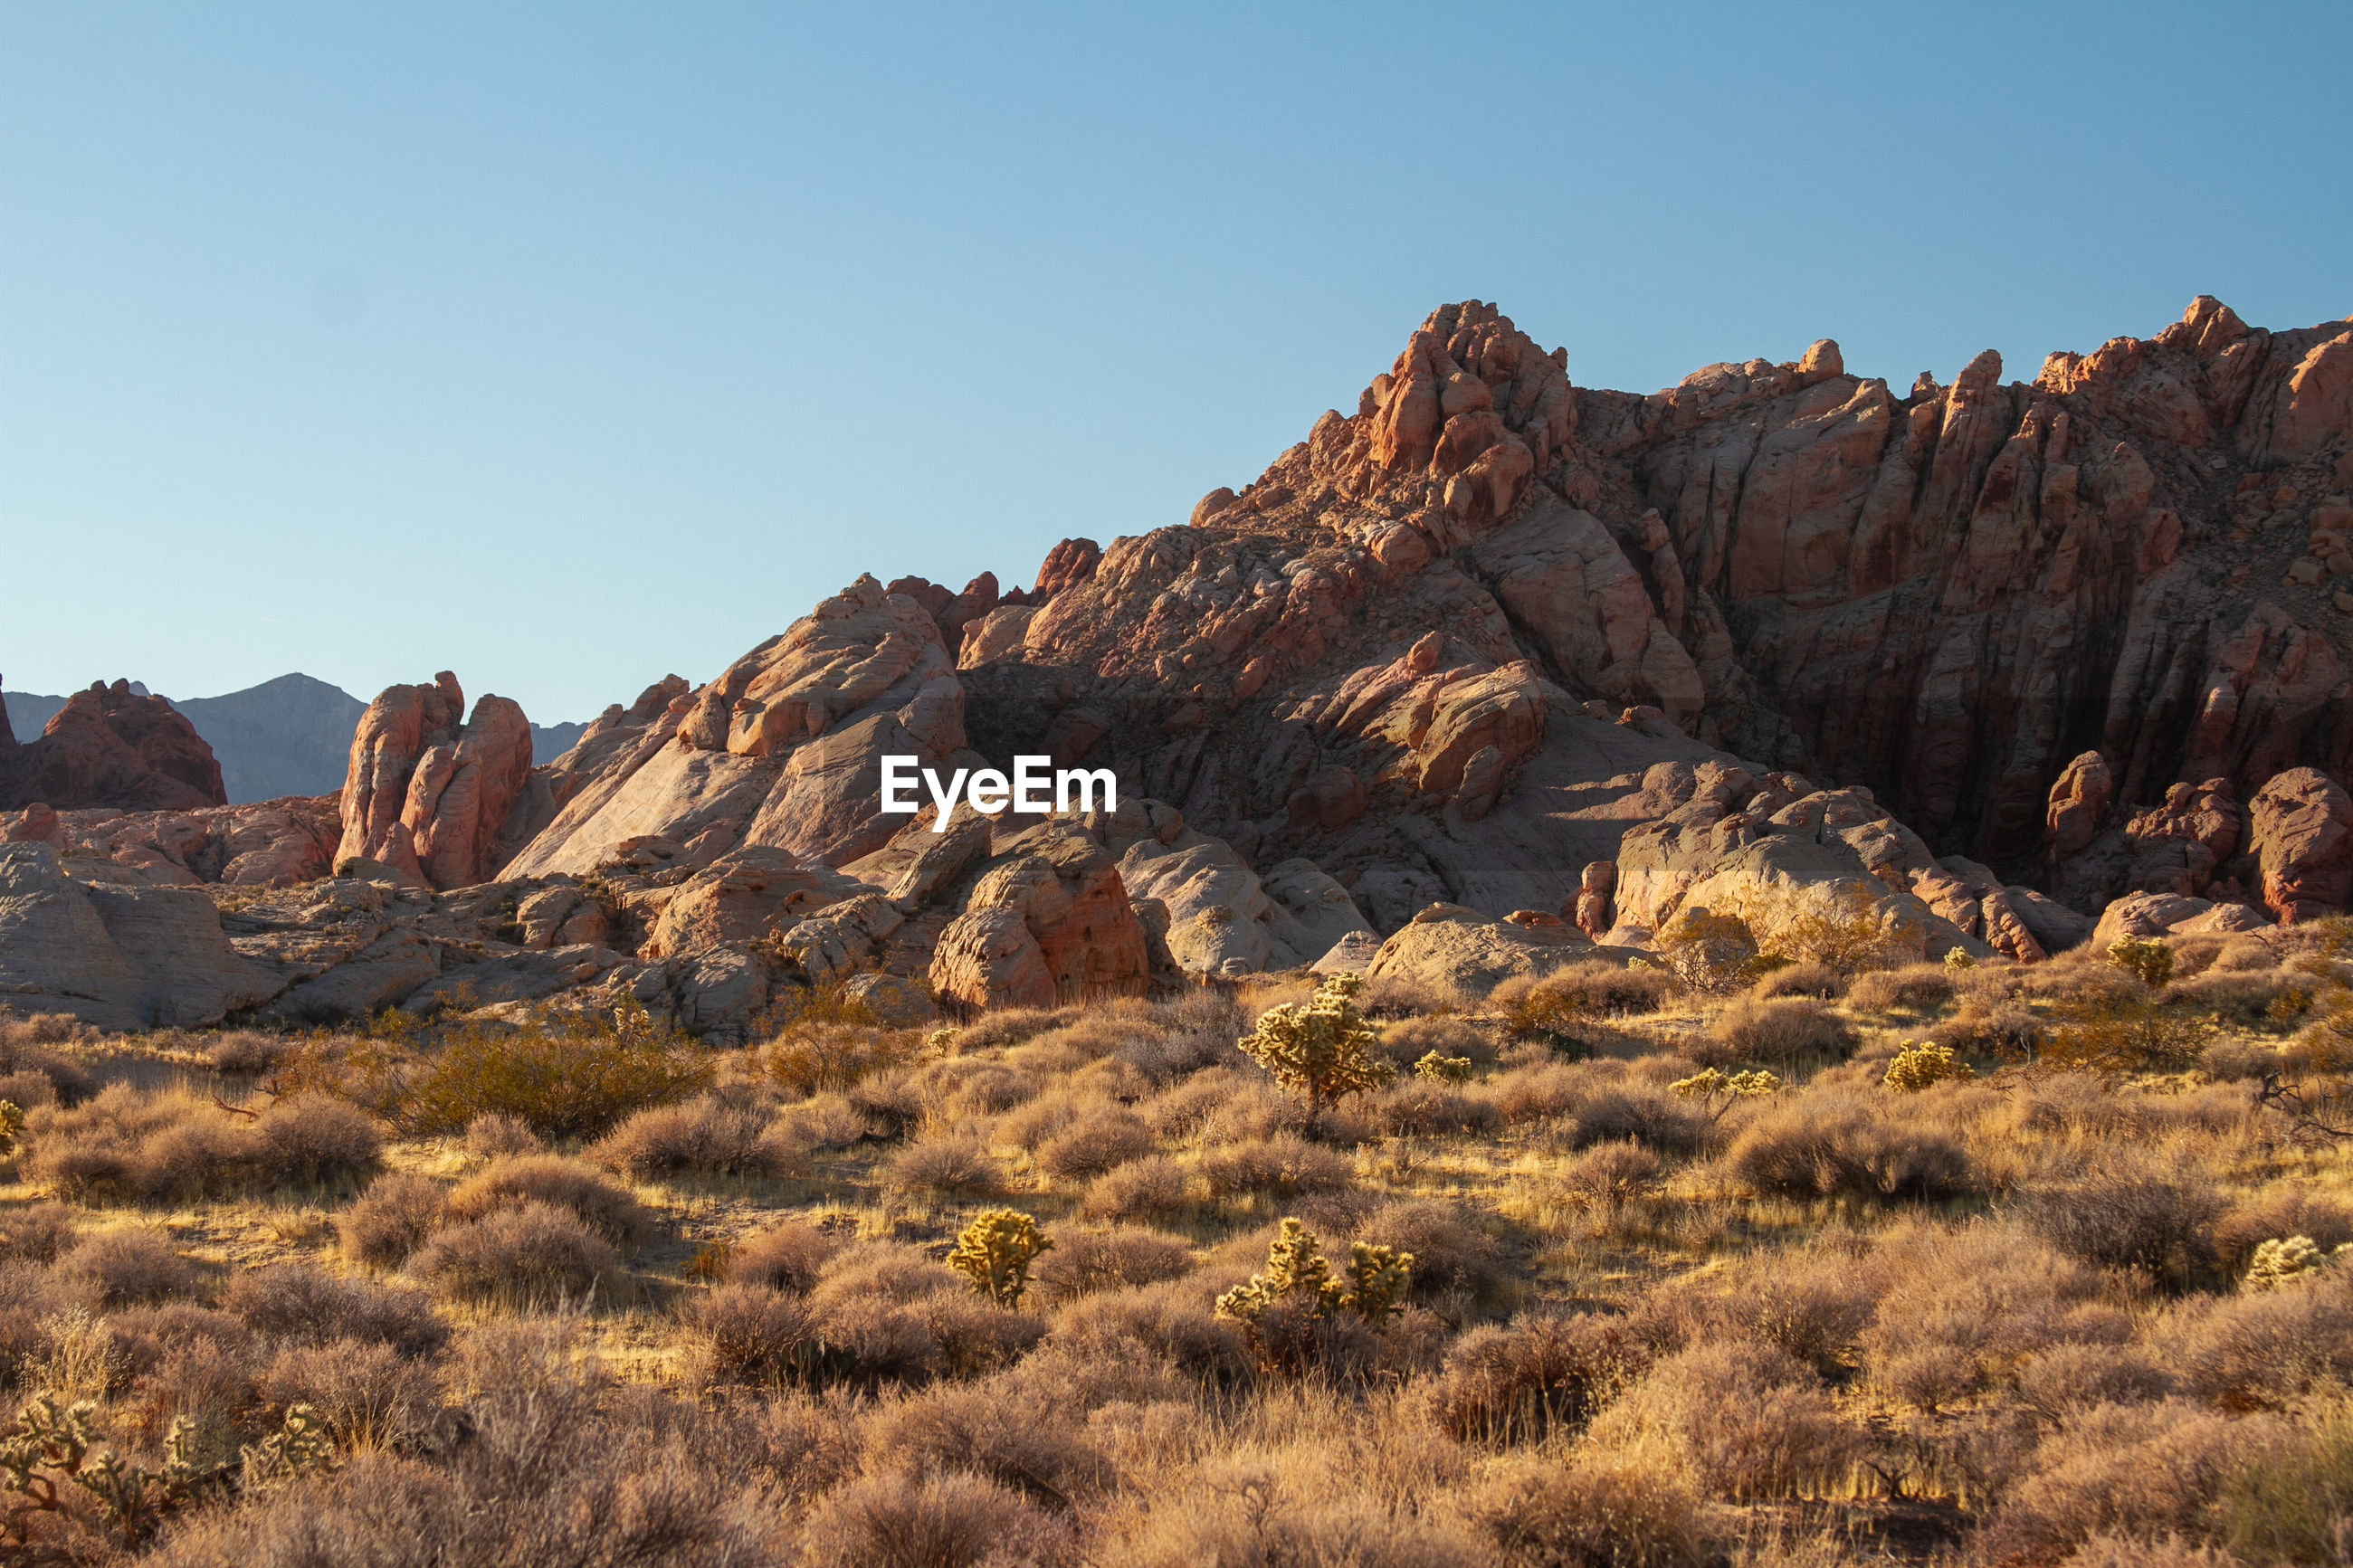 Rock formations on landscape against clear sky